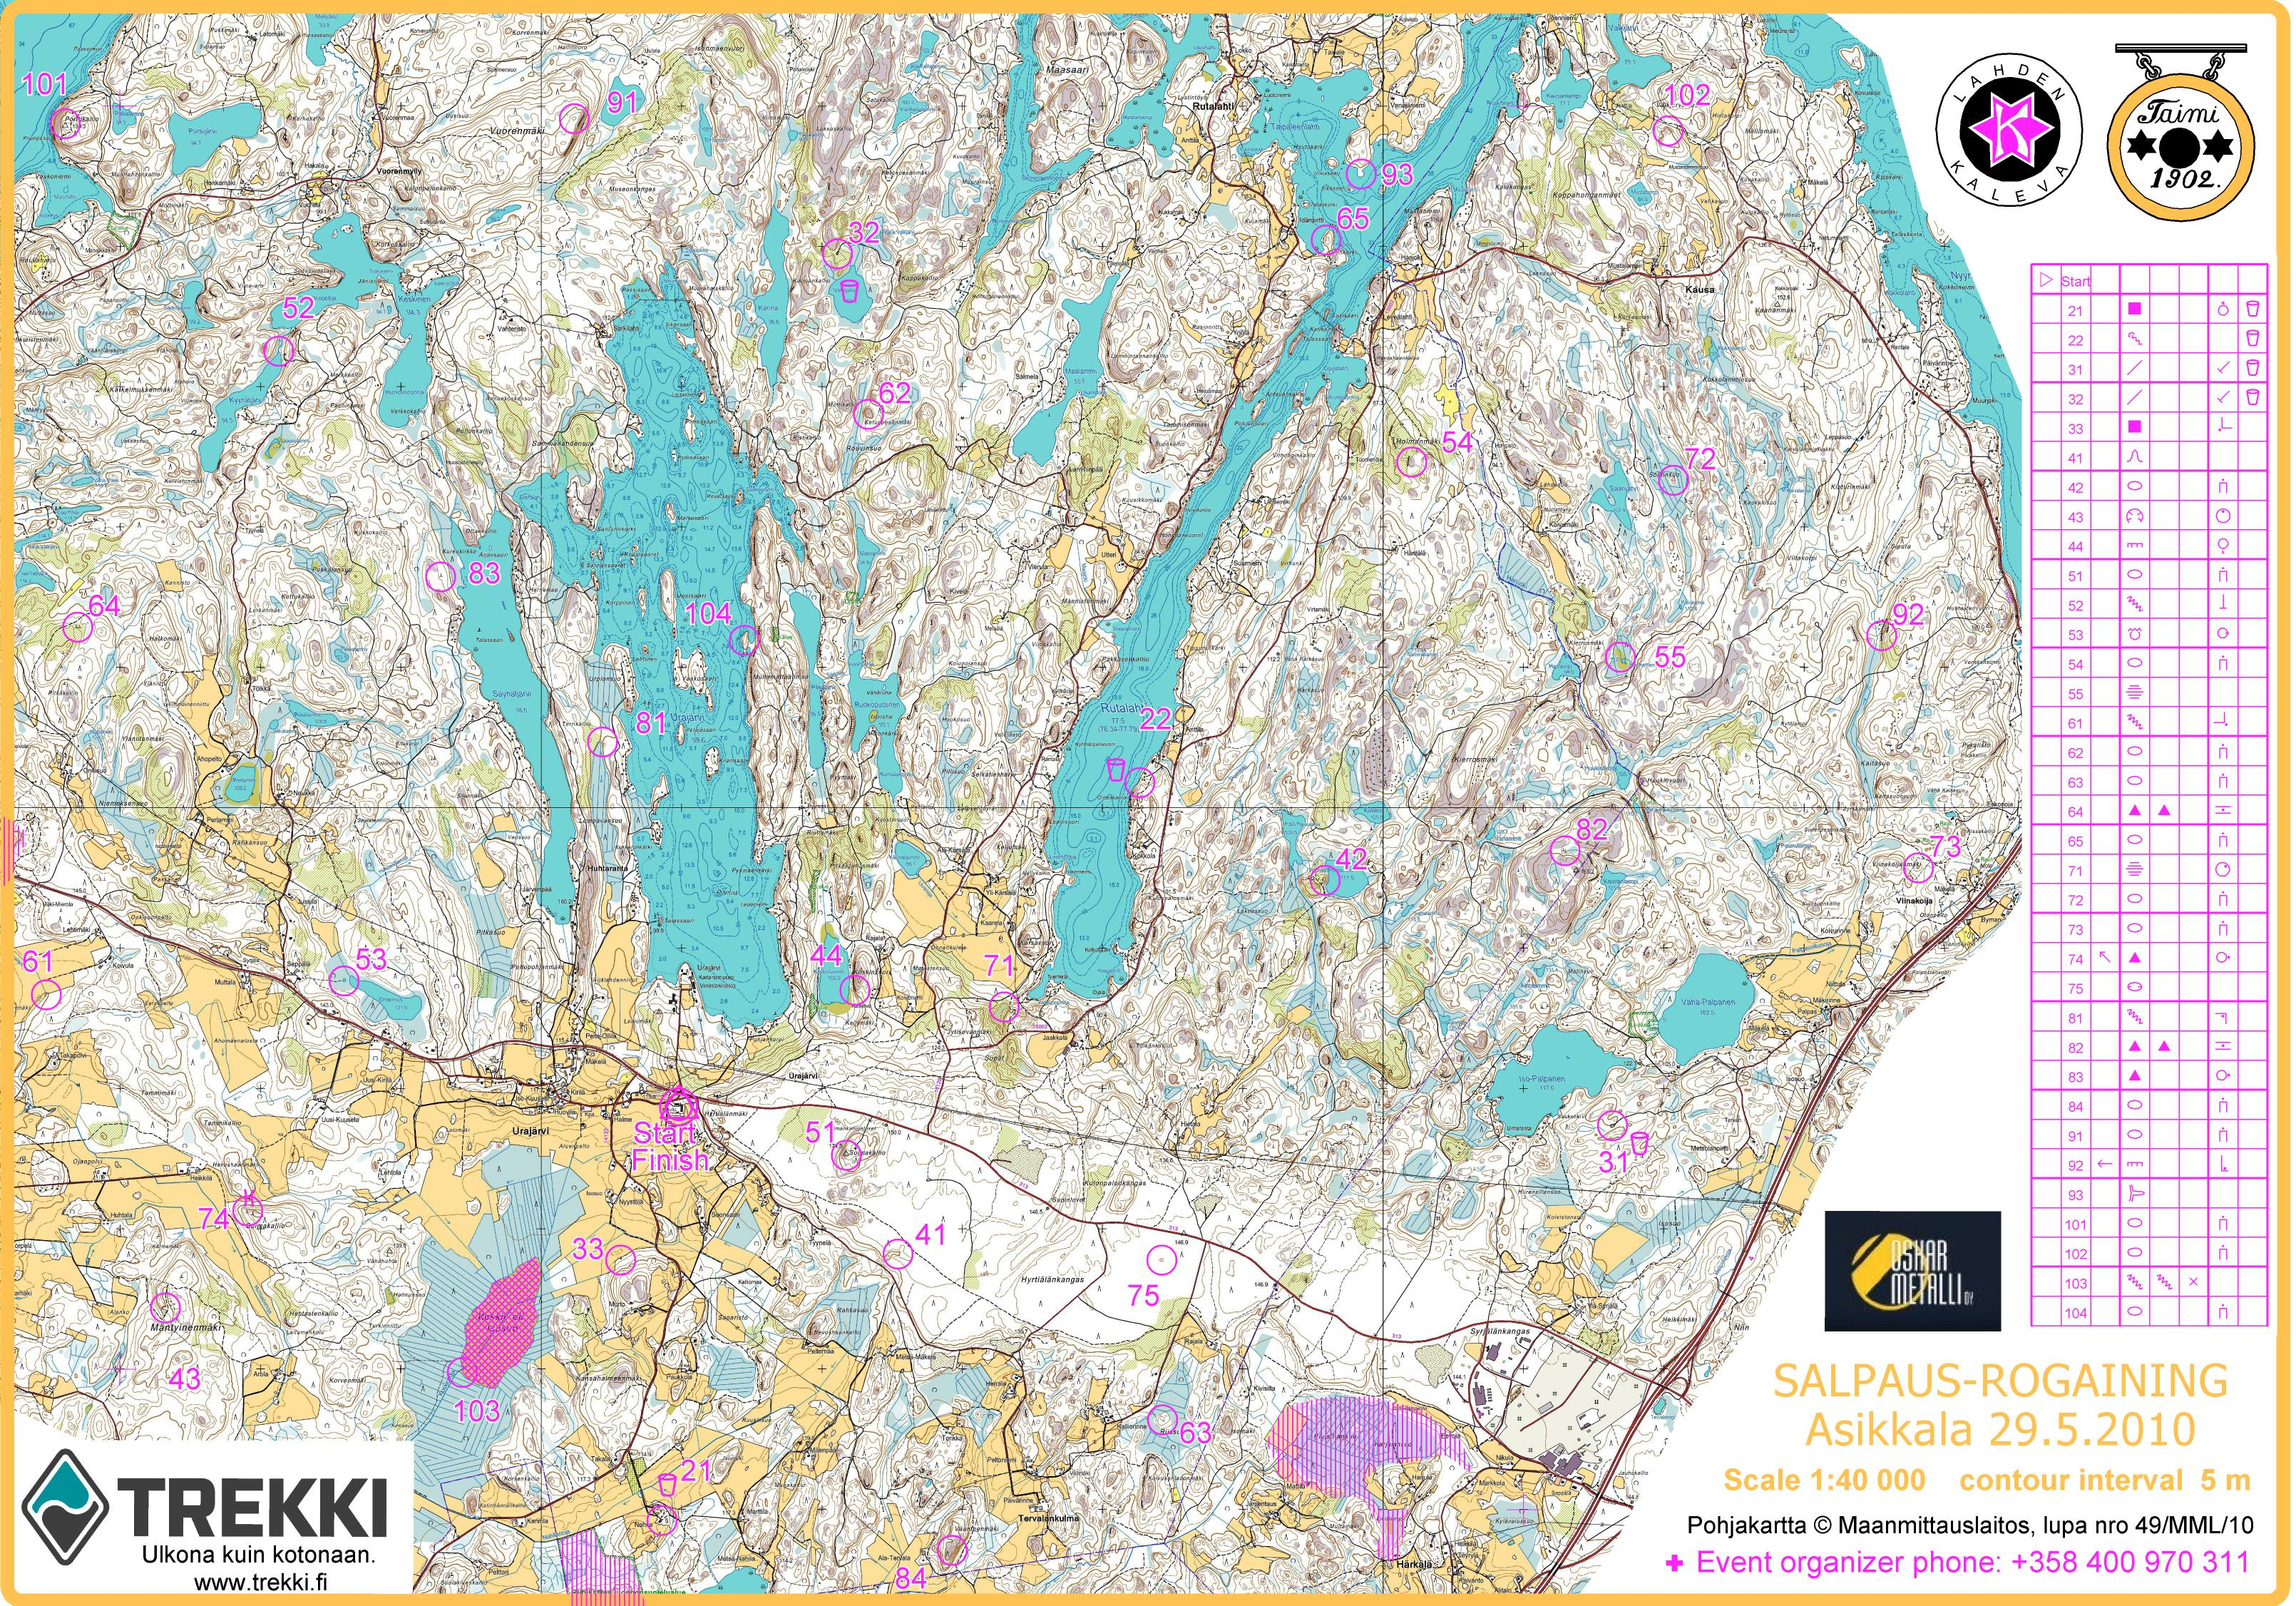 Salpaus Rogaining 6h May 29th 2010 Orienteering Map From